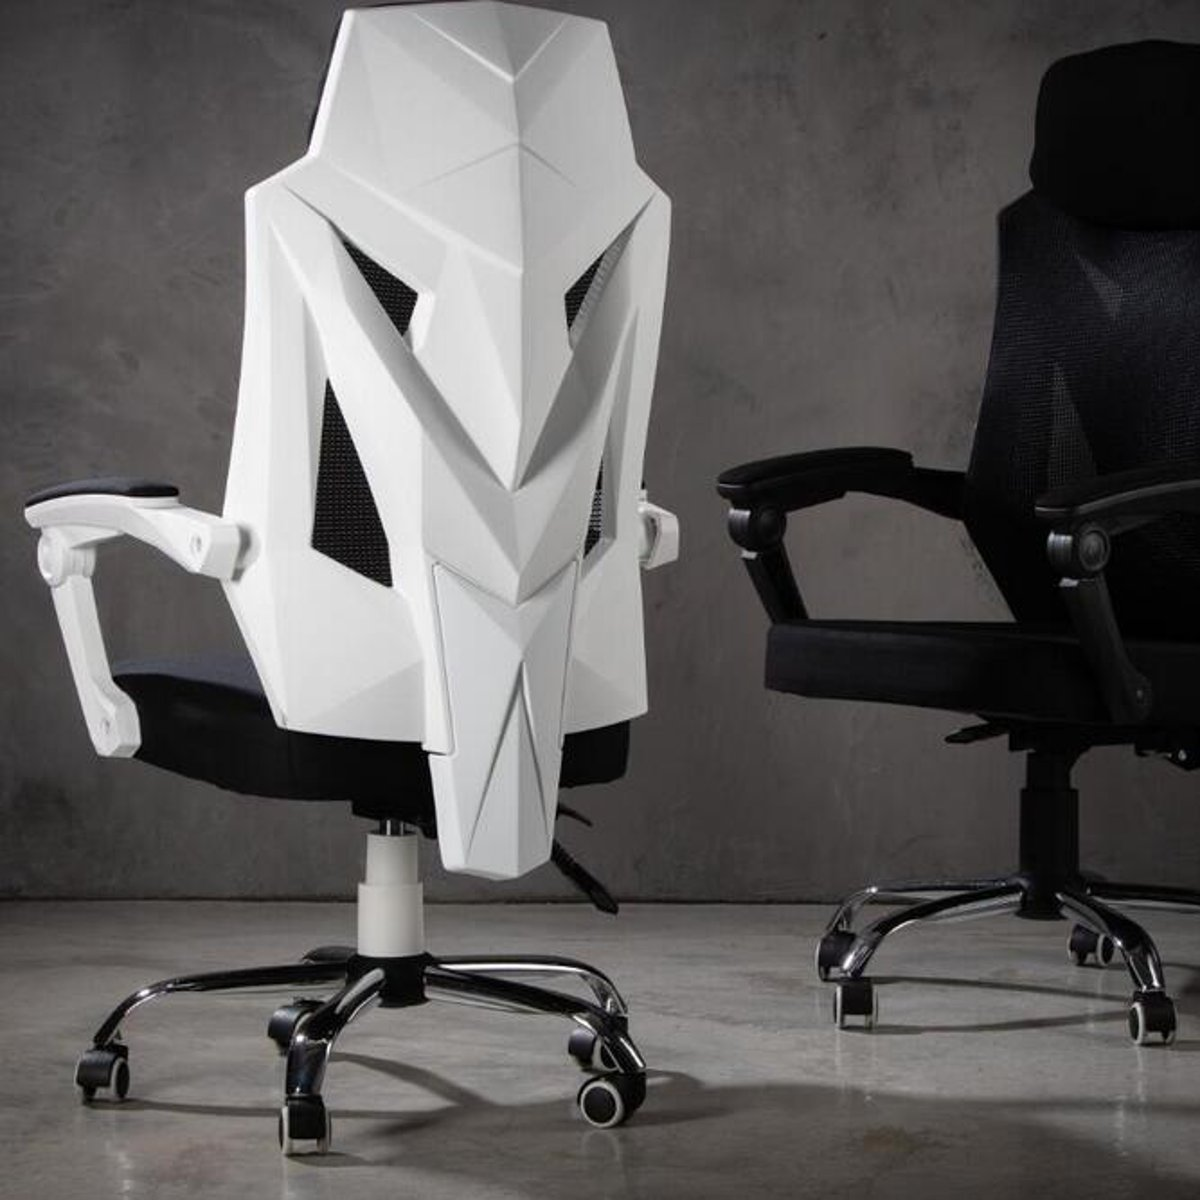 New Mesh Chair High Back Racing Gaming Chair Ergonomic Office School Chairs Recliner Seat With Footrest Computer Chair Furniture